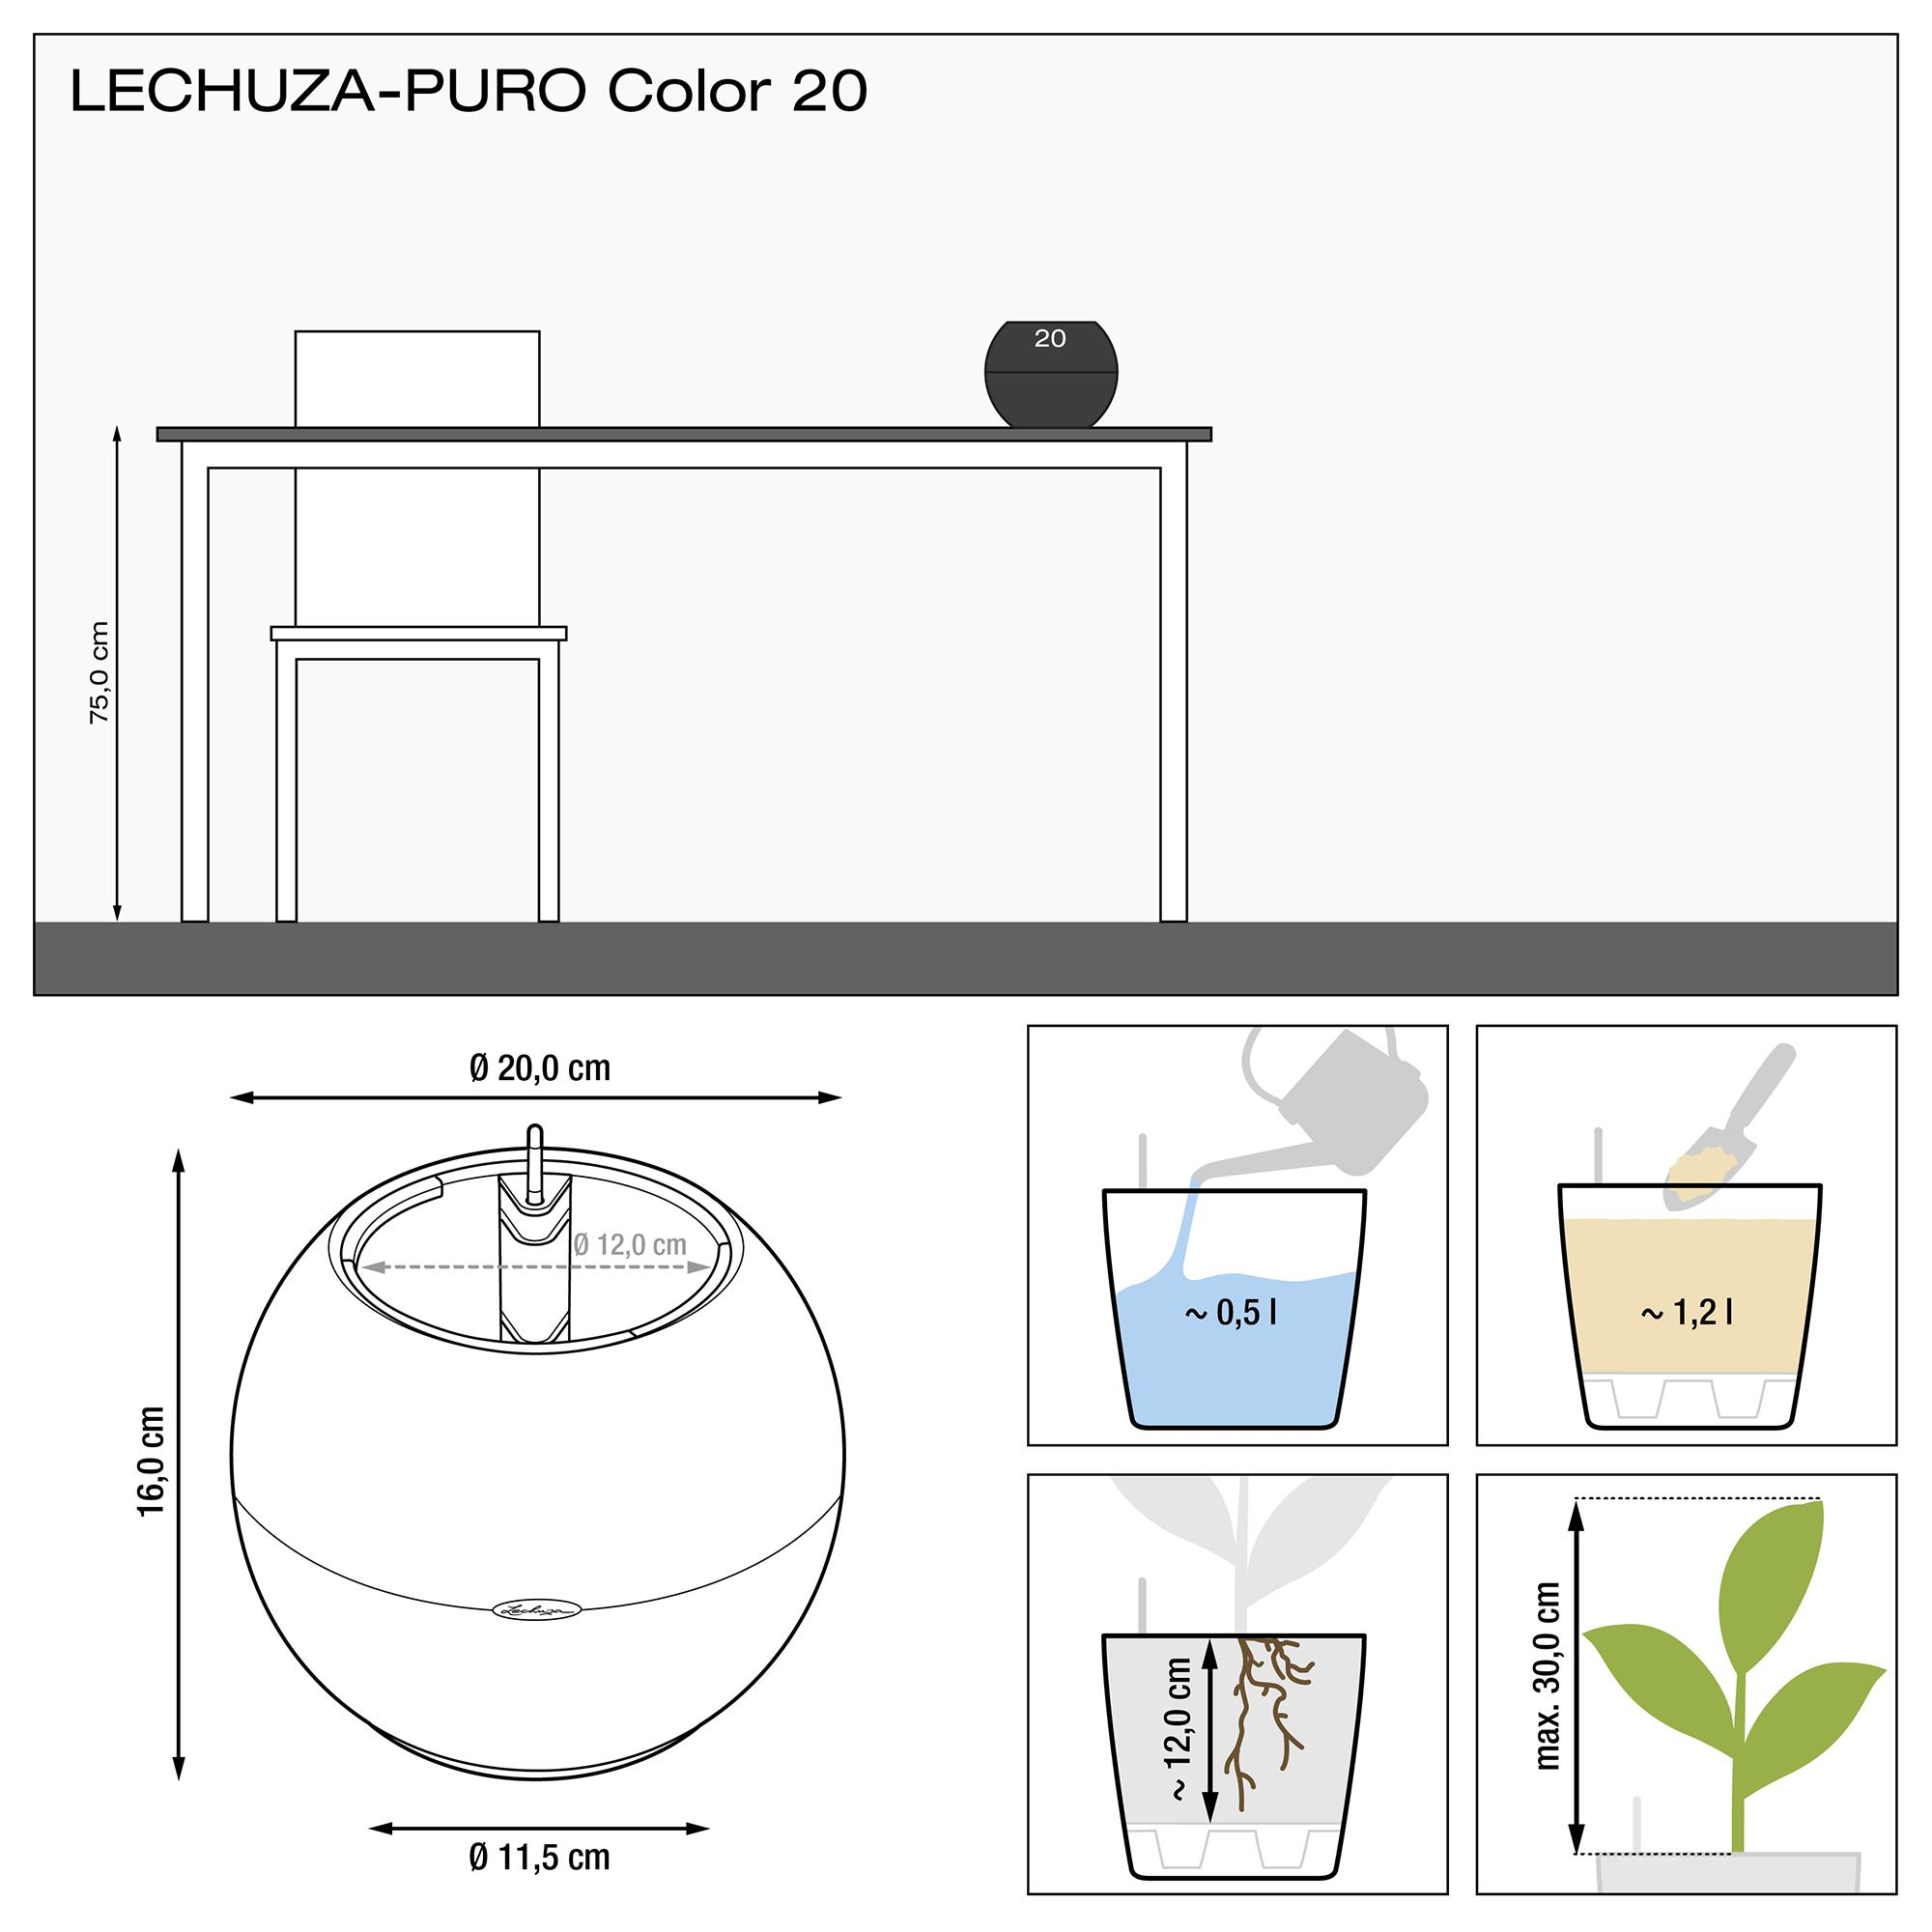 le_puro-color20_product_addi_nz